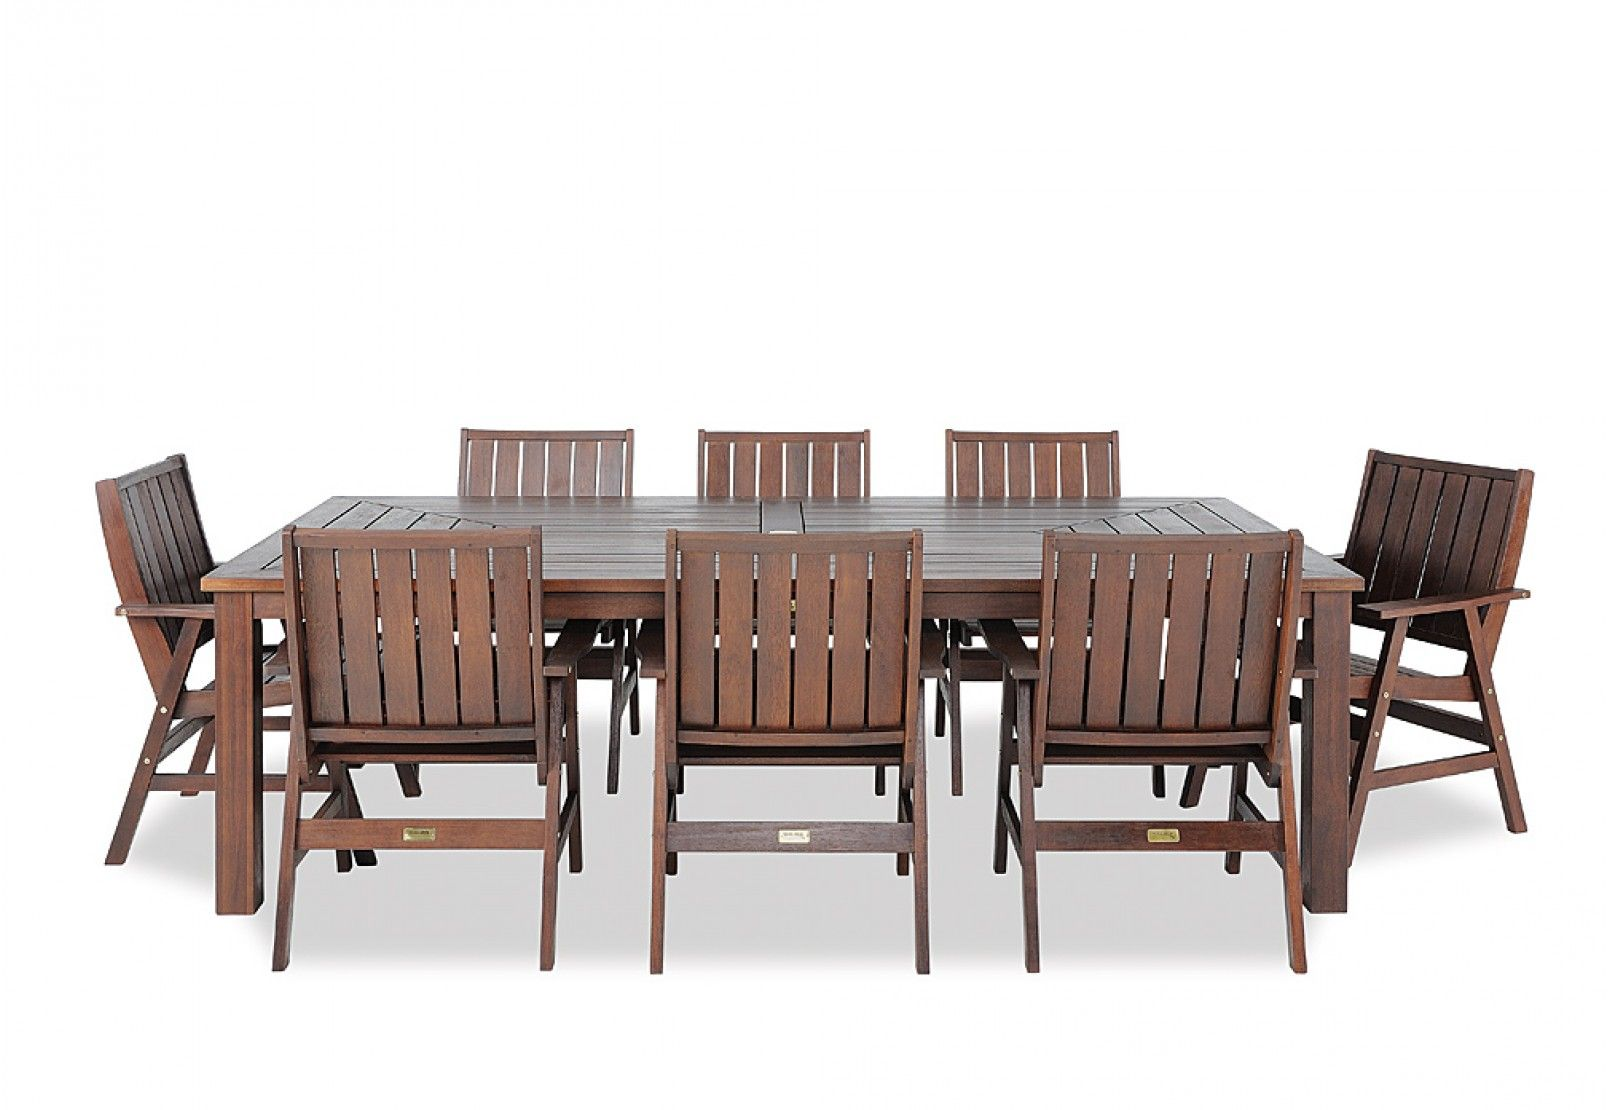 Super Amart Dining Table And Chairs Nullarbor 9 Piece Outdoor Setting Super A Mart Outdoor